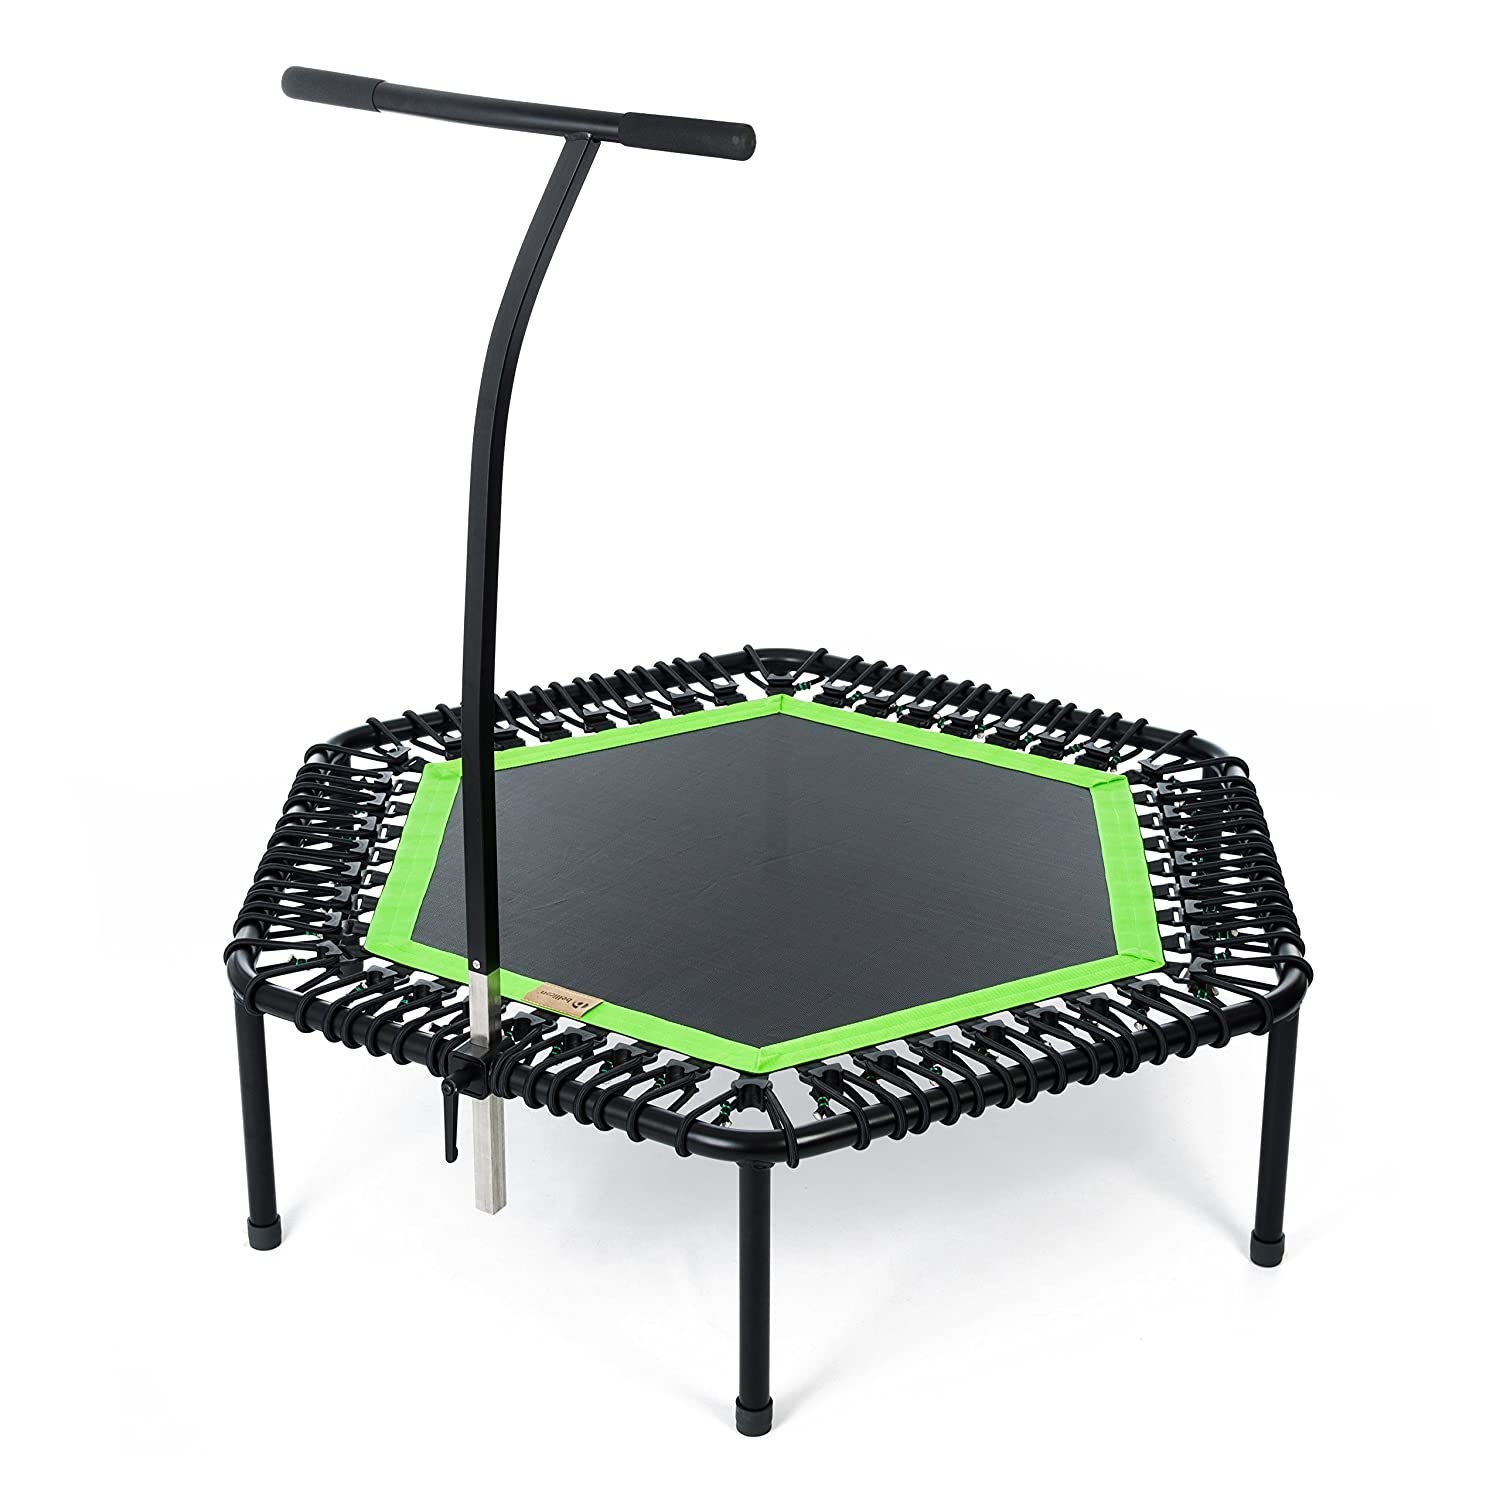 bellicon® Jumping Fitness Trampolin bei amazon kaufen